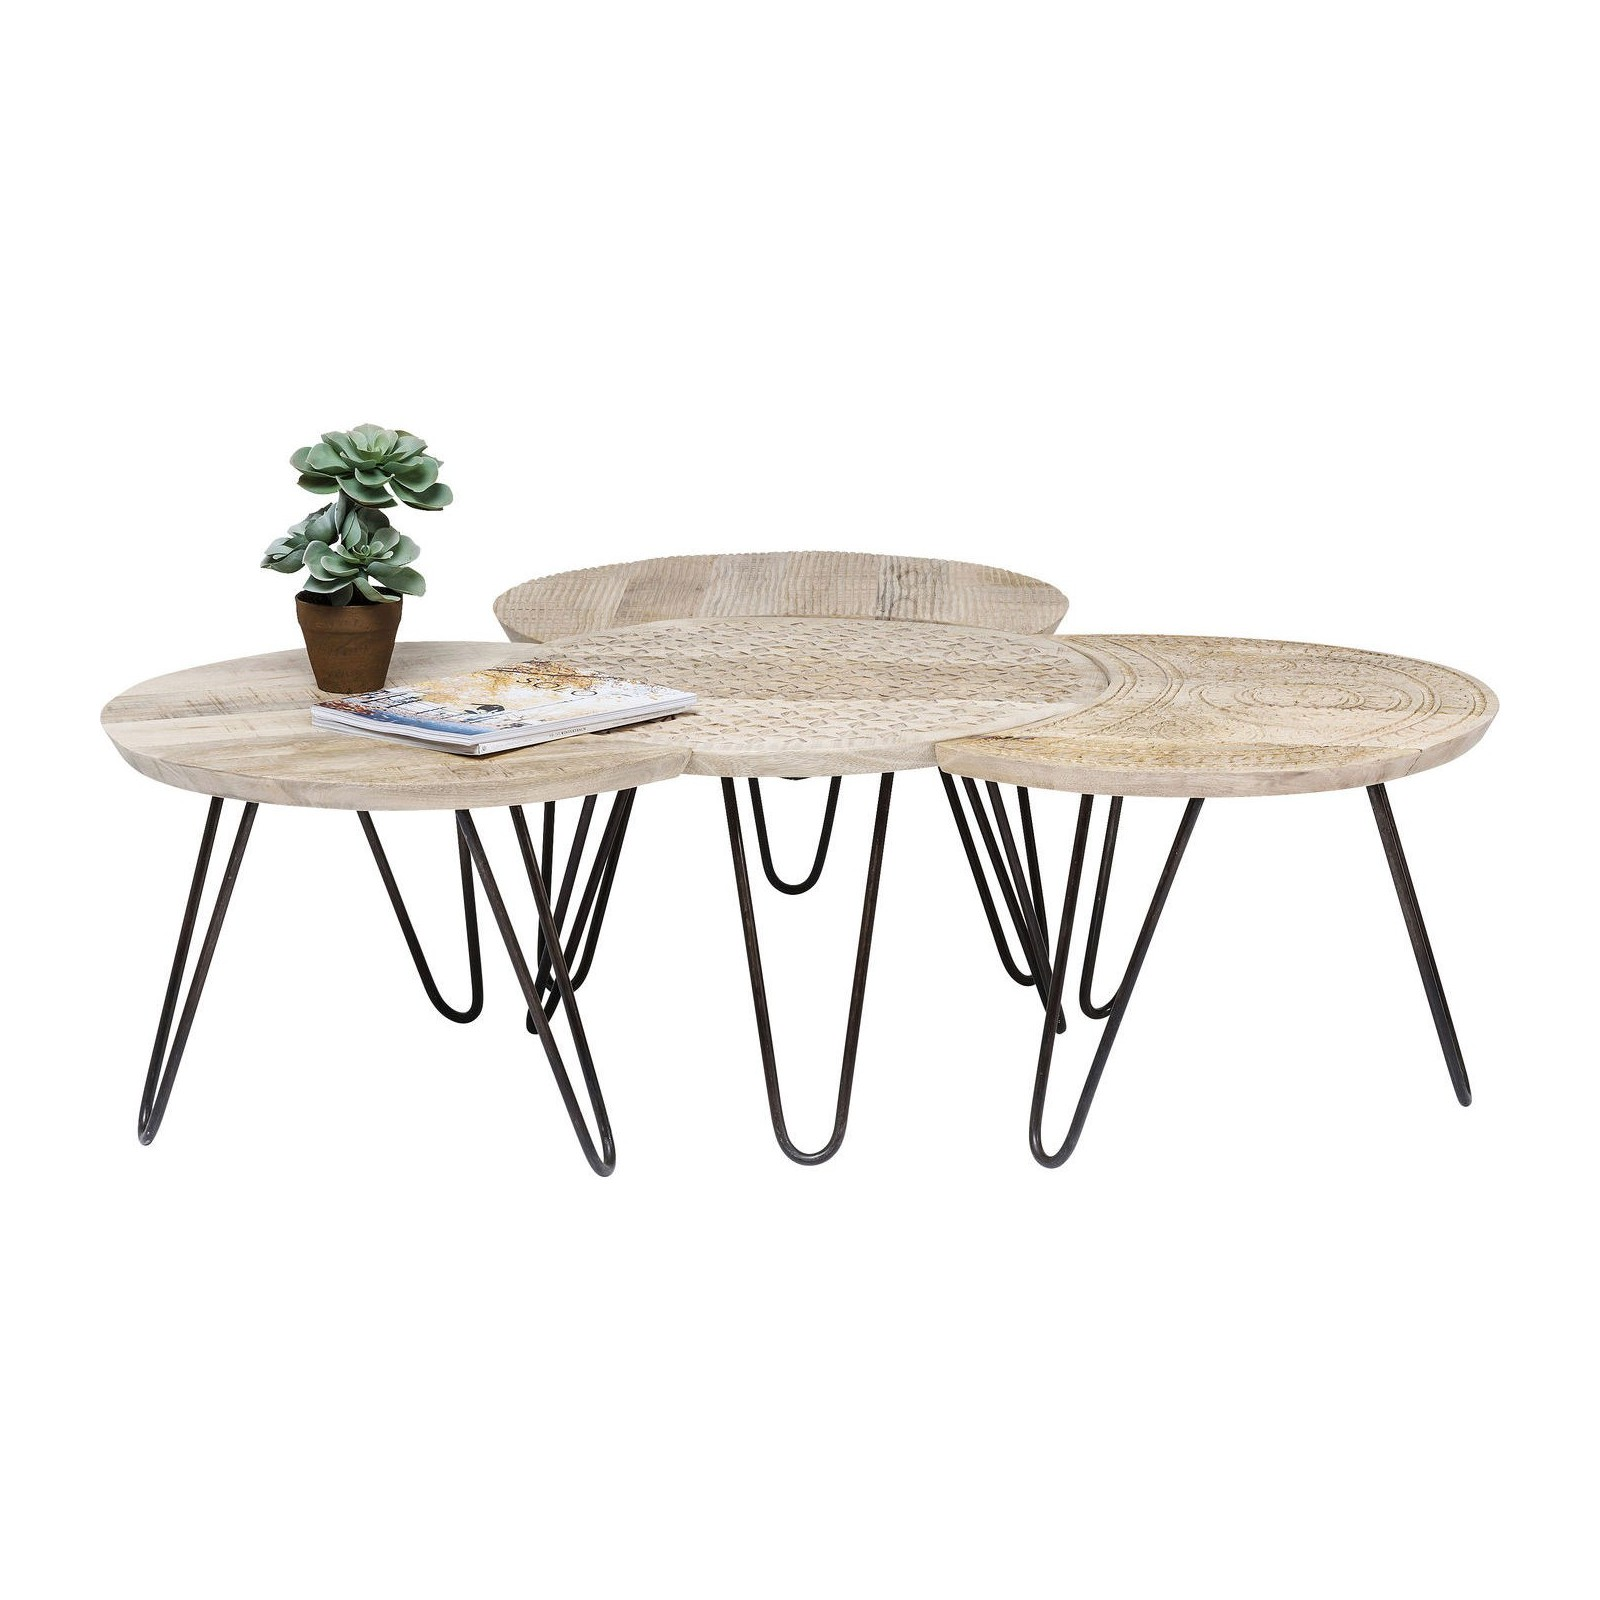 Table Ethnique Design Puro Kare Bois Basse CexdoB